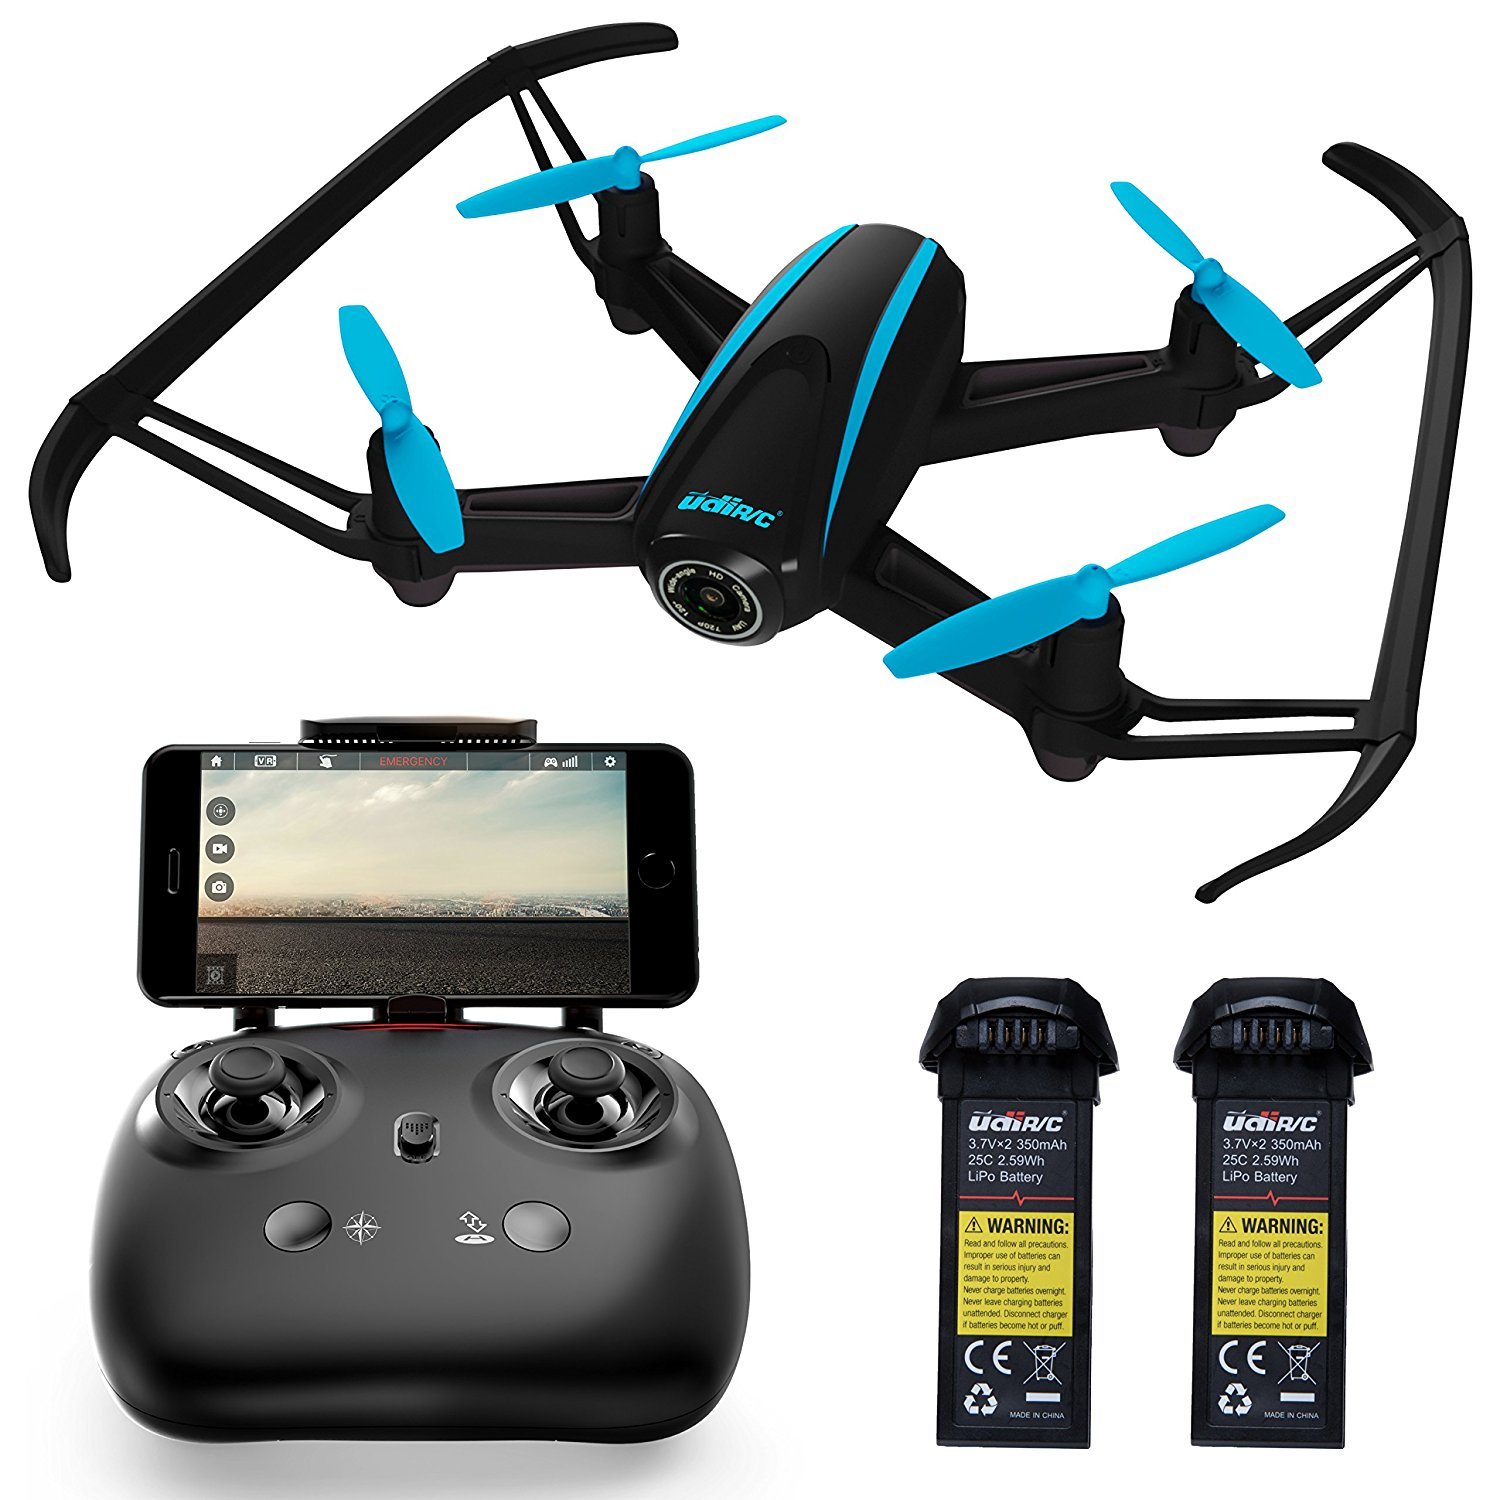 Force1 HD Drone with Camera